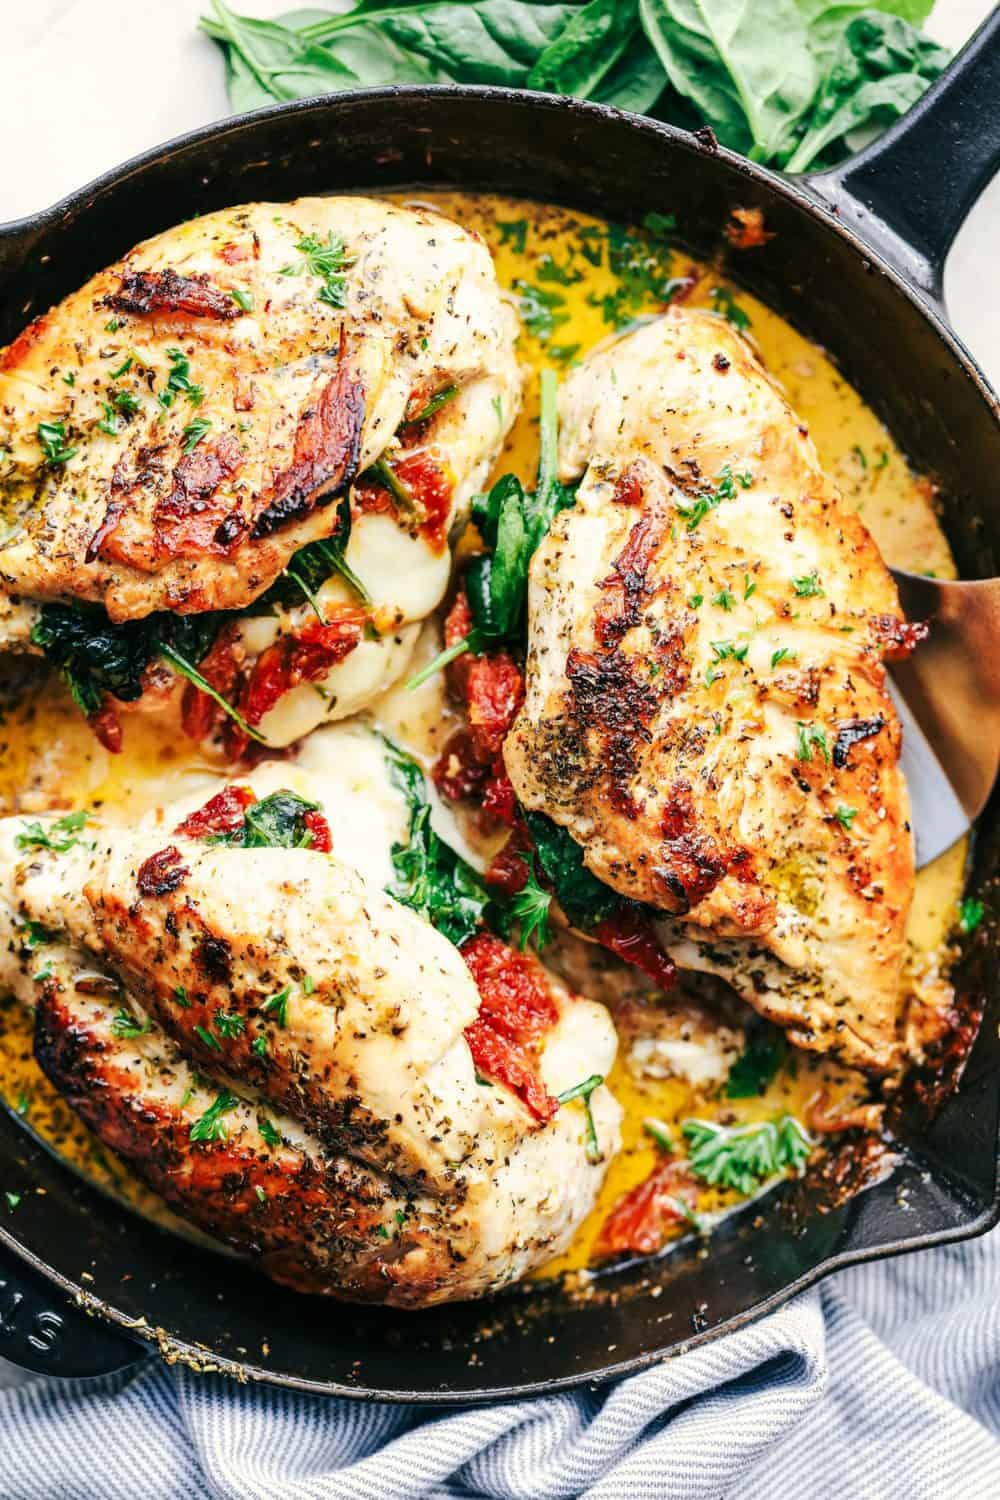 Chicken stuffed with rice: cooking recipes